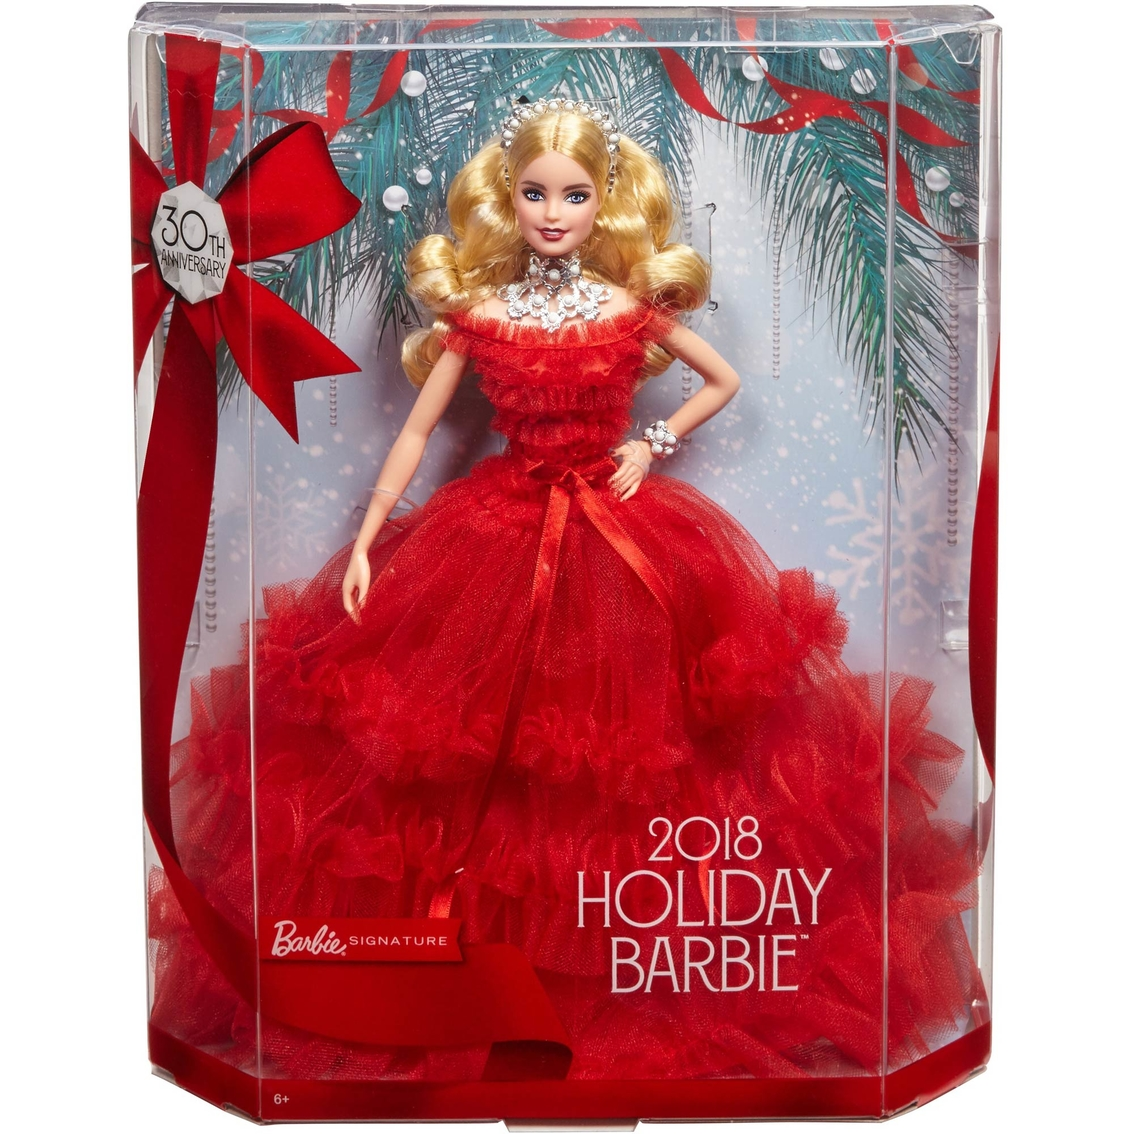 de85a60ff1497 2018 Holiday Barbie Doll Blonde | Dolls | Baby & Toys | Shop The ...